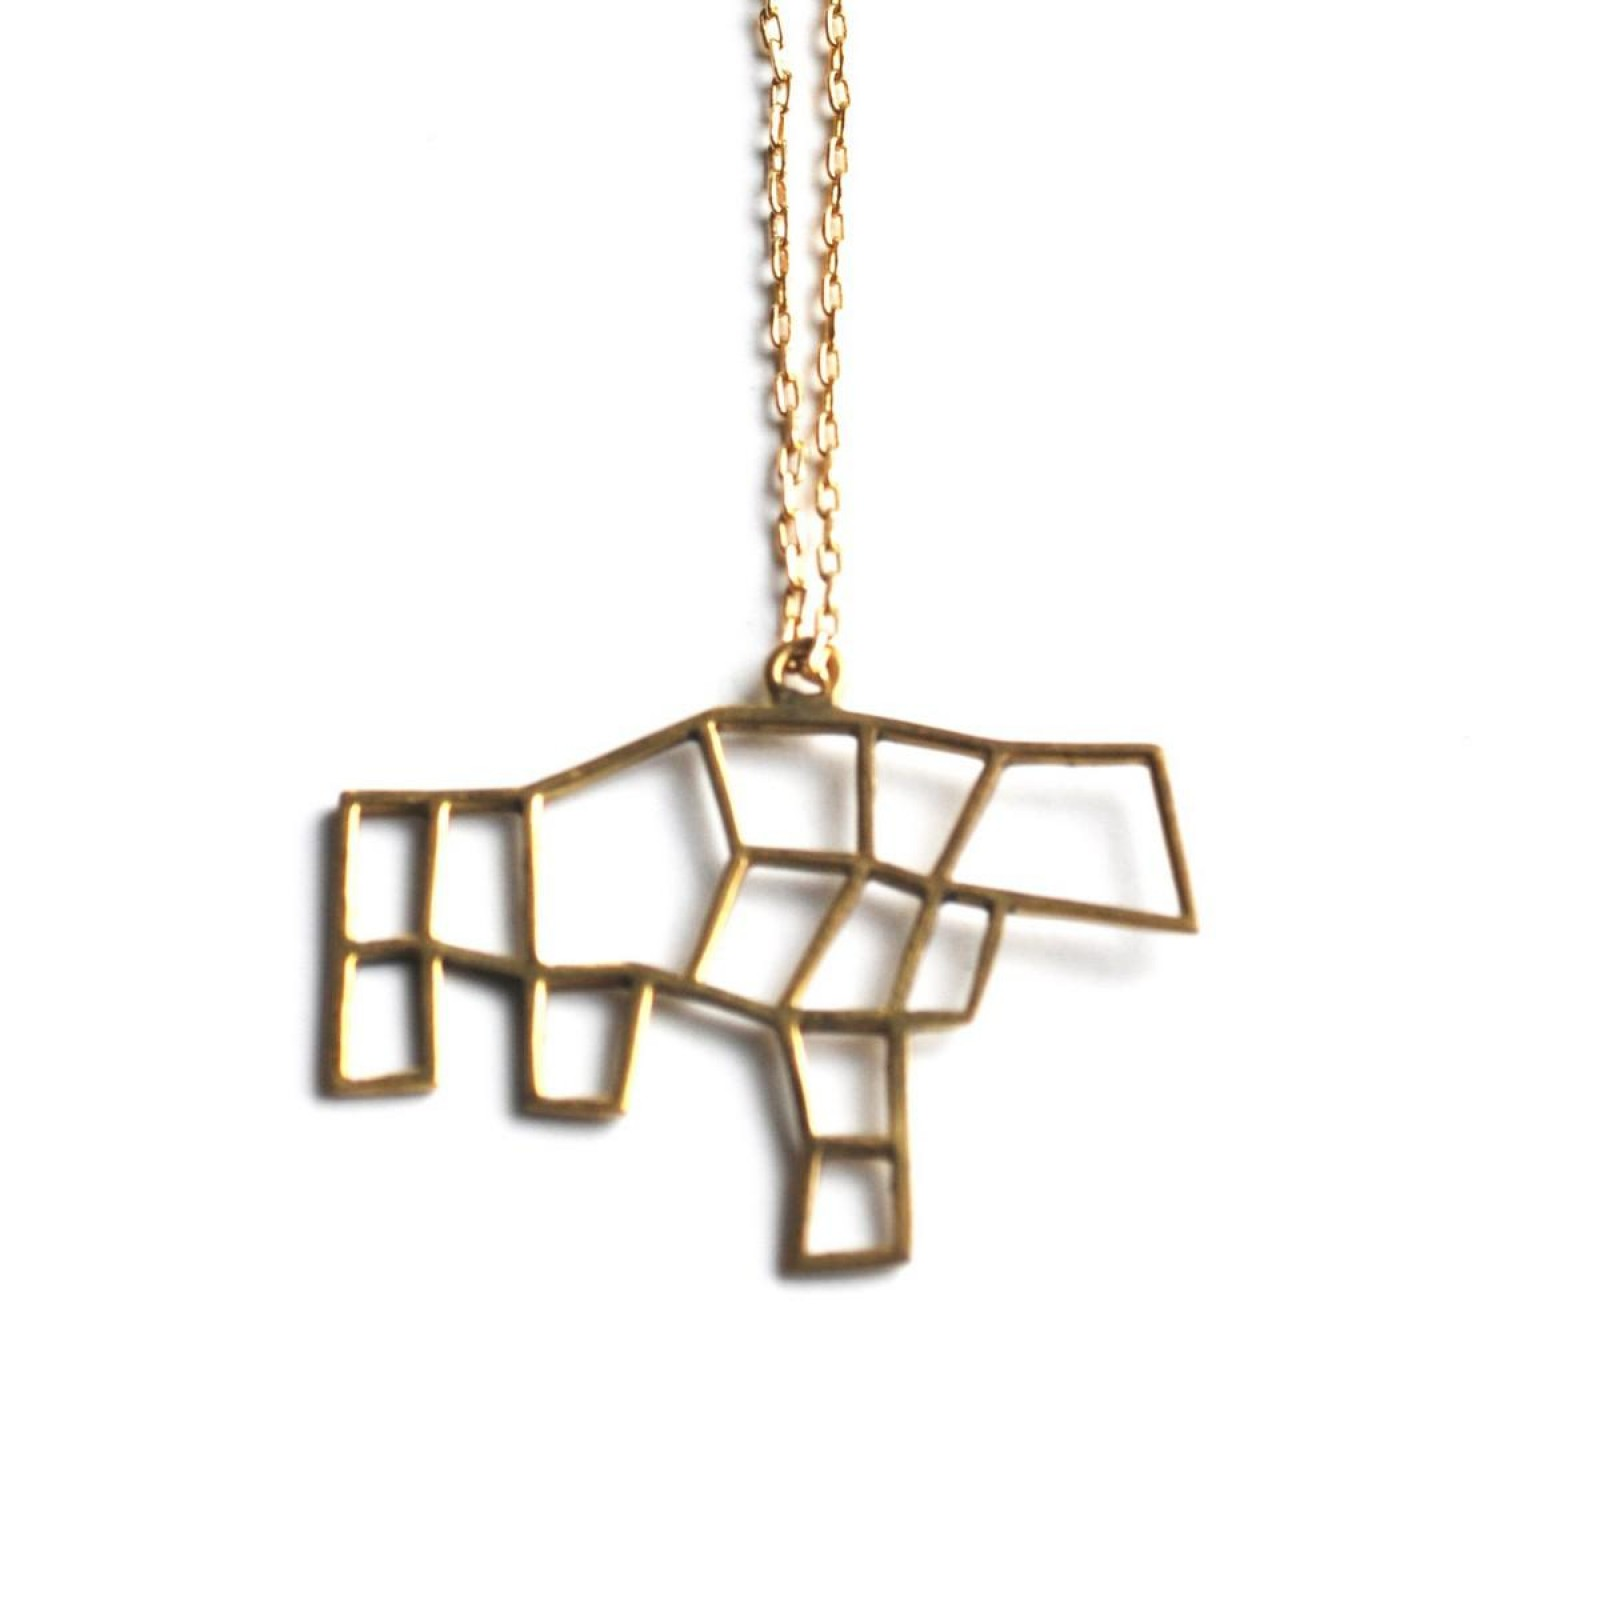 Not Square BM04 Necklace - B-MADE